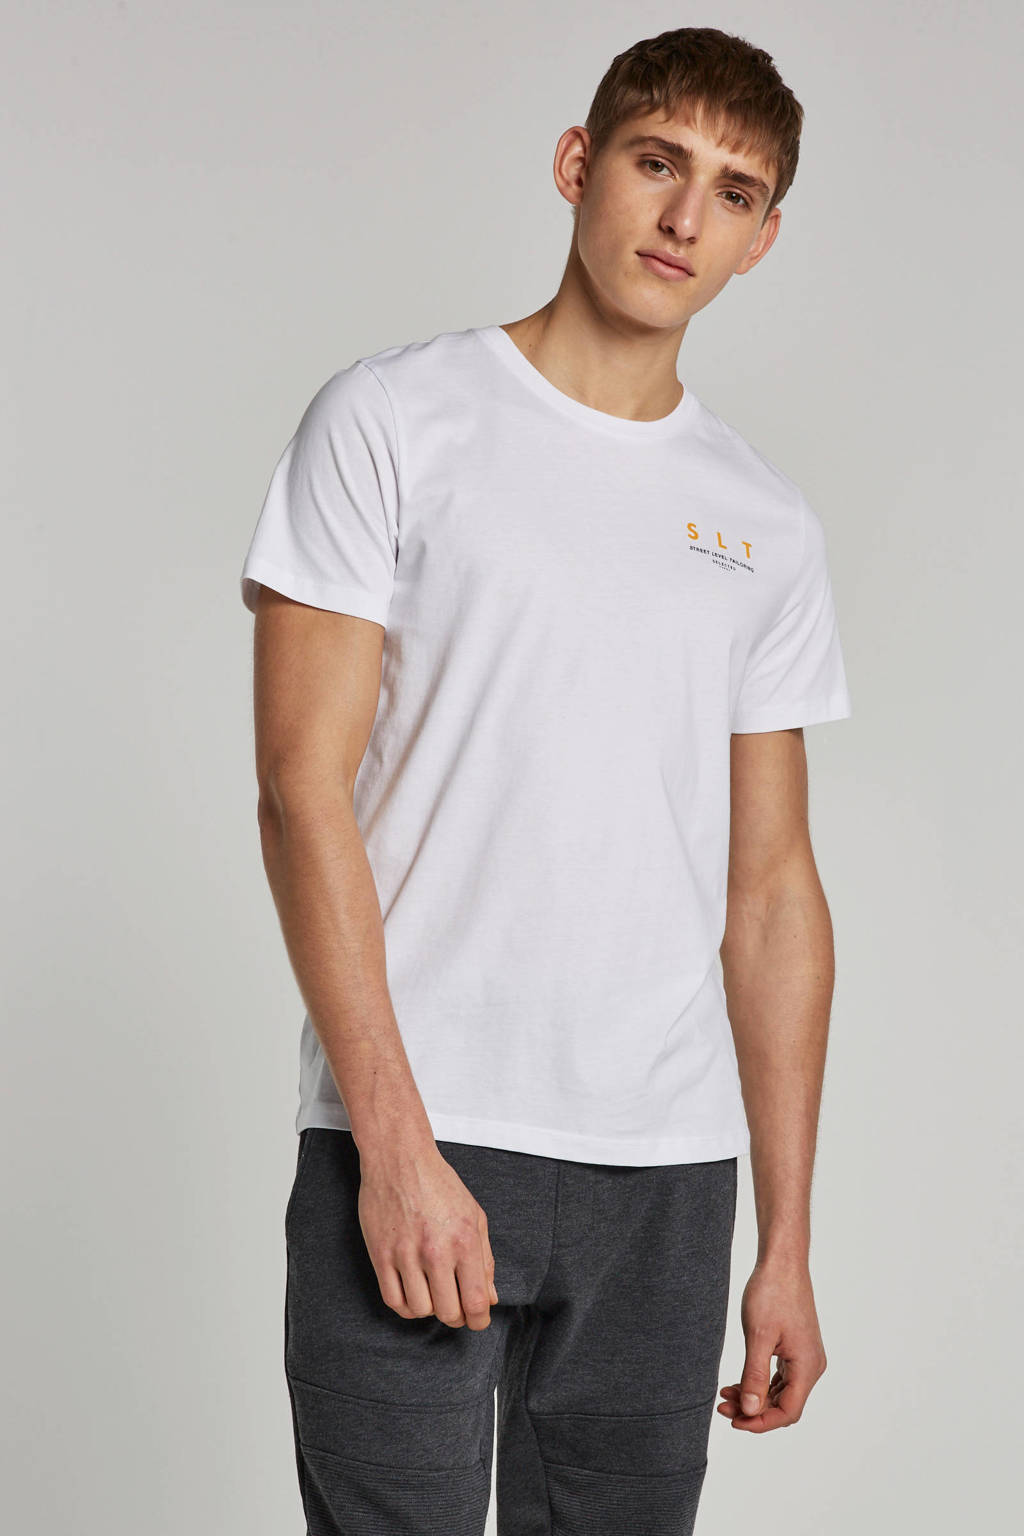 SELECTED HOMME T-shirt, Wit